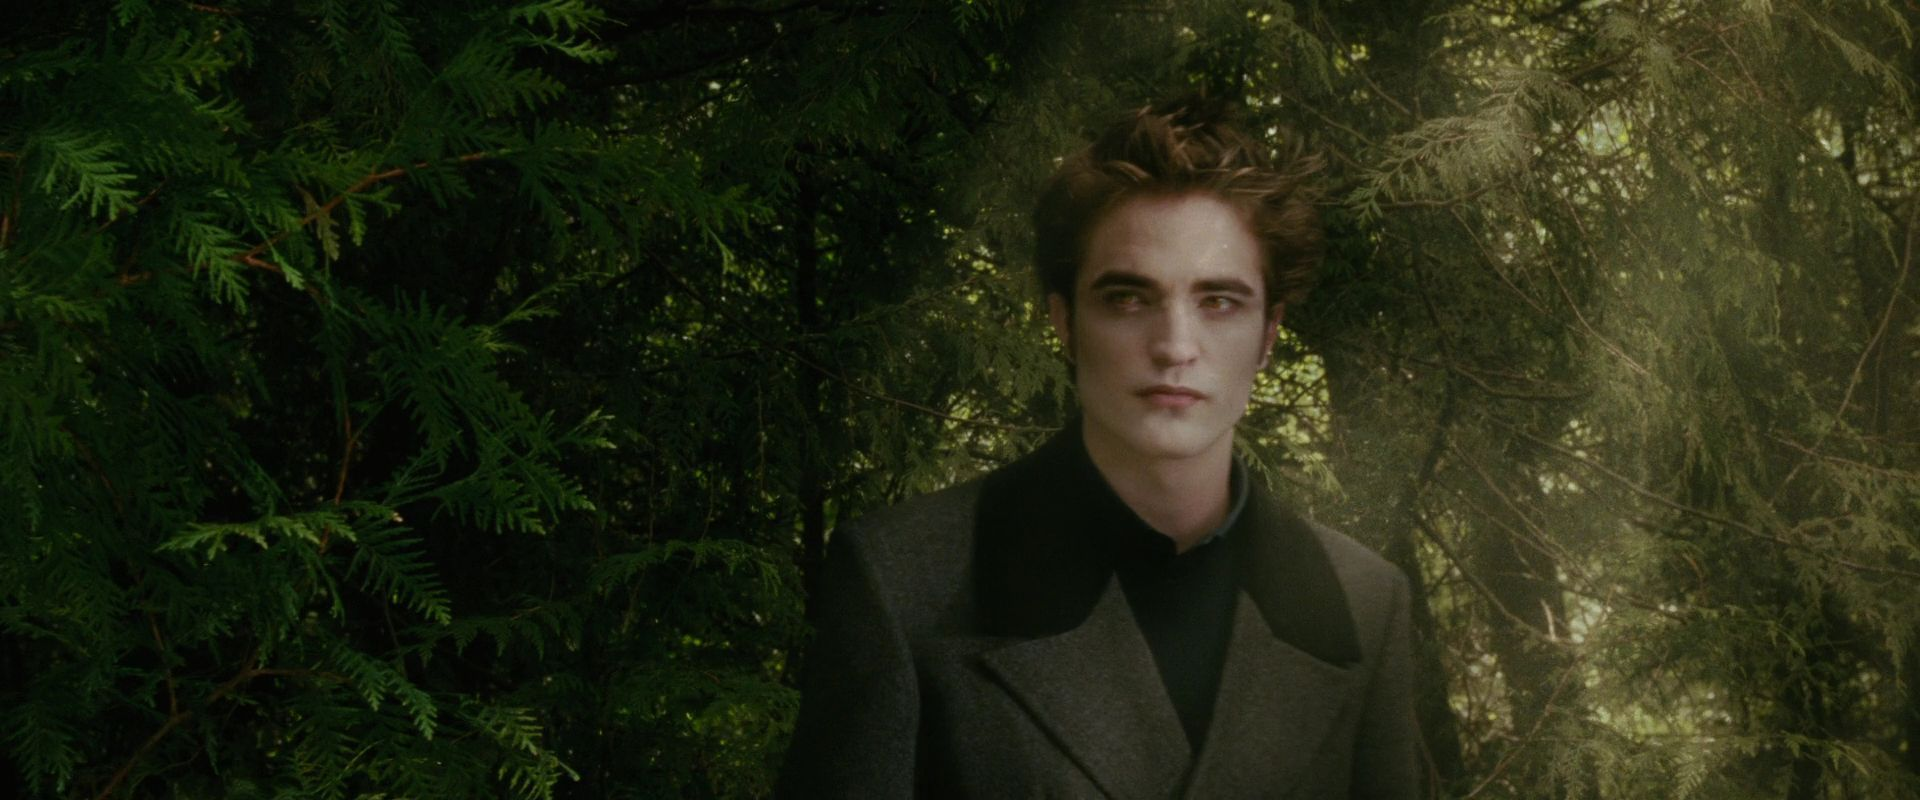 New Moon Screencaps Edward Cullen Image 15114287 Fanpop